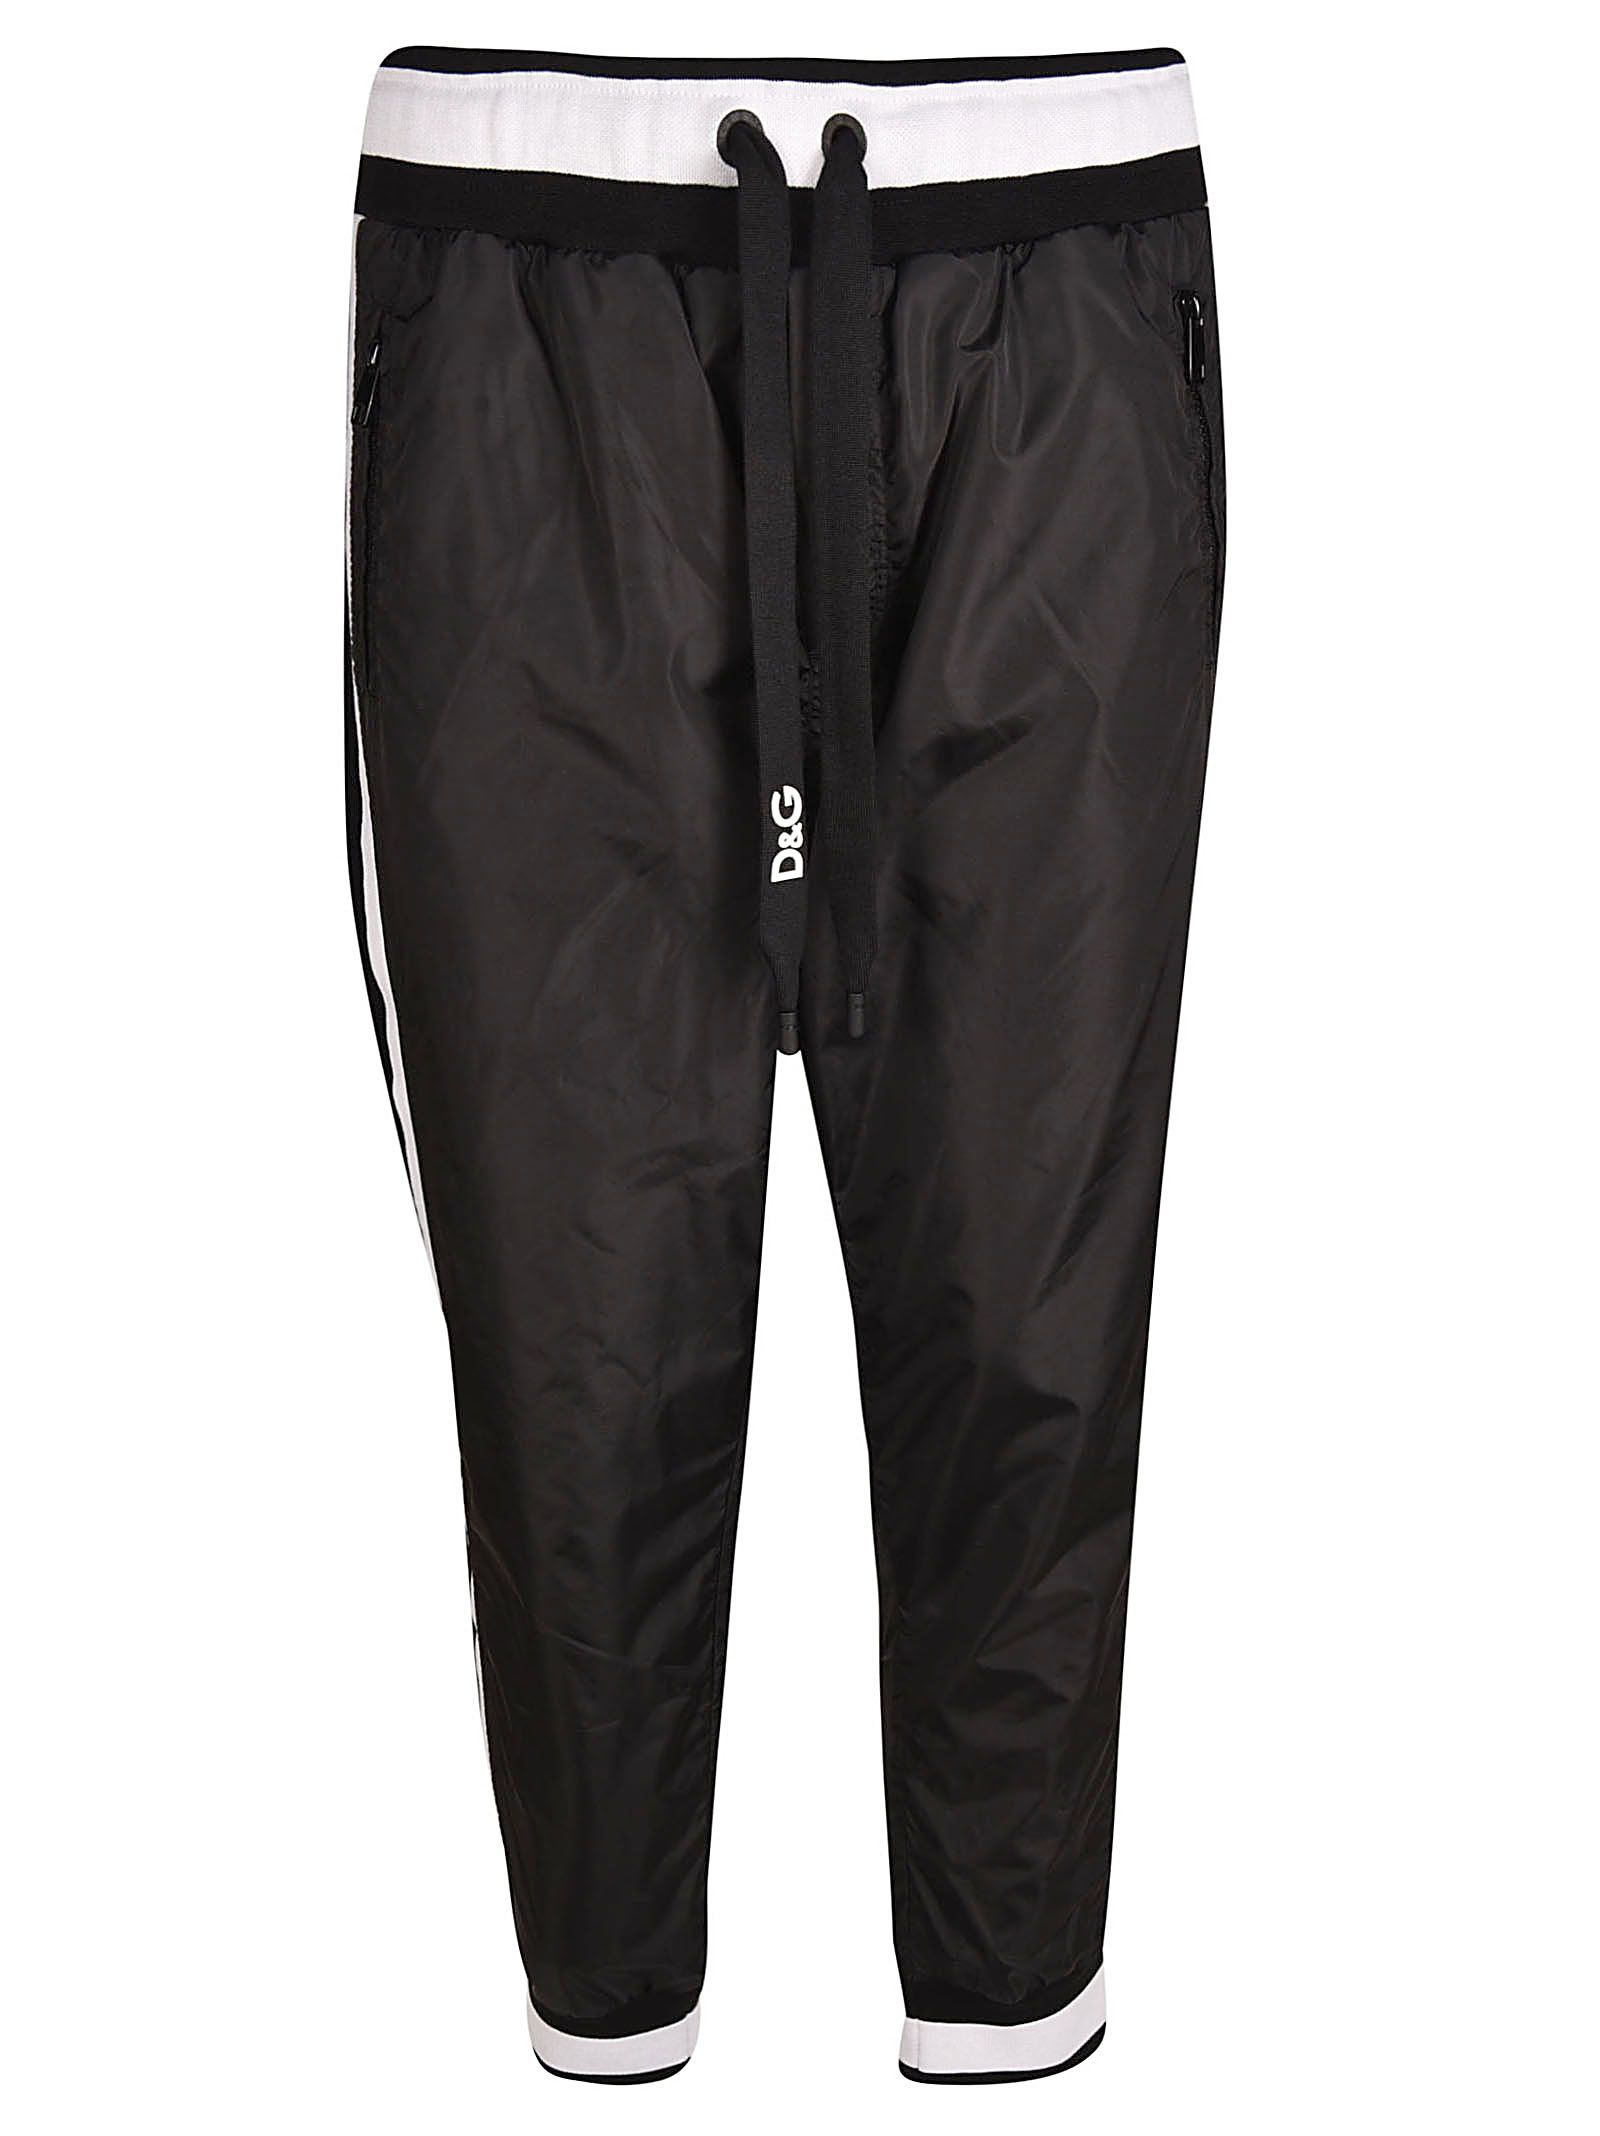 Dolce & Gabbana Striped Trim Track Pants